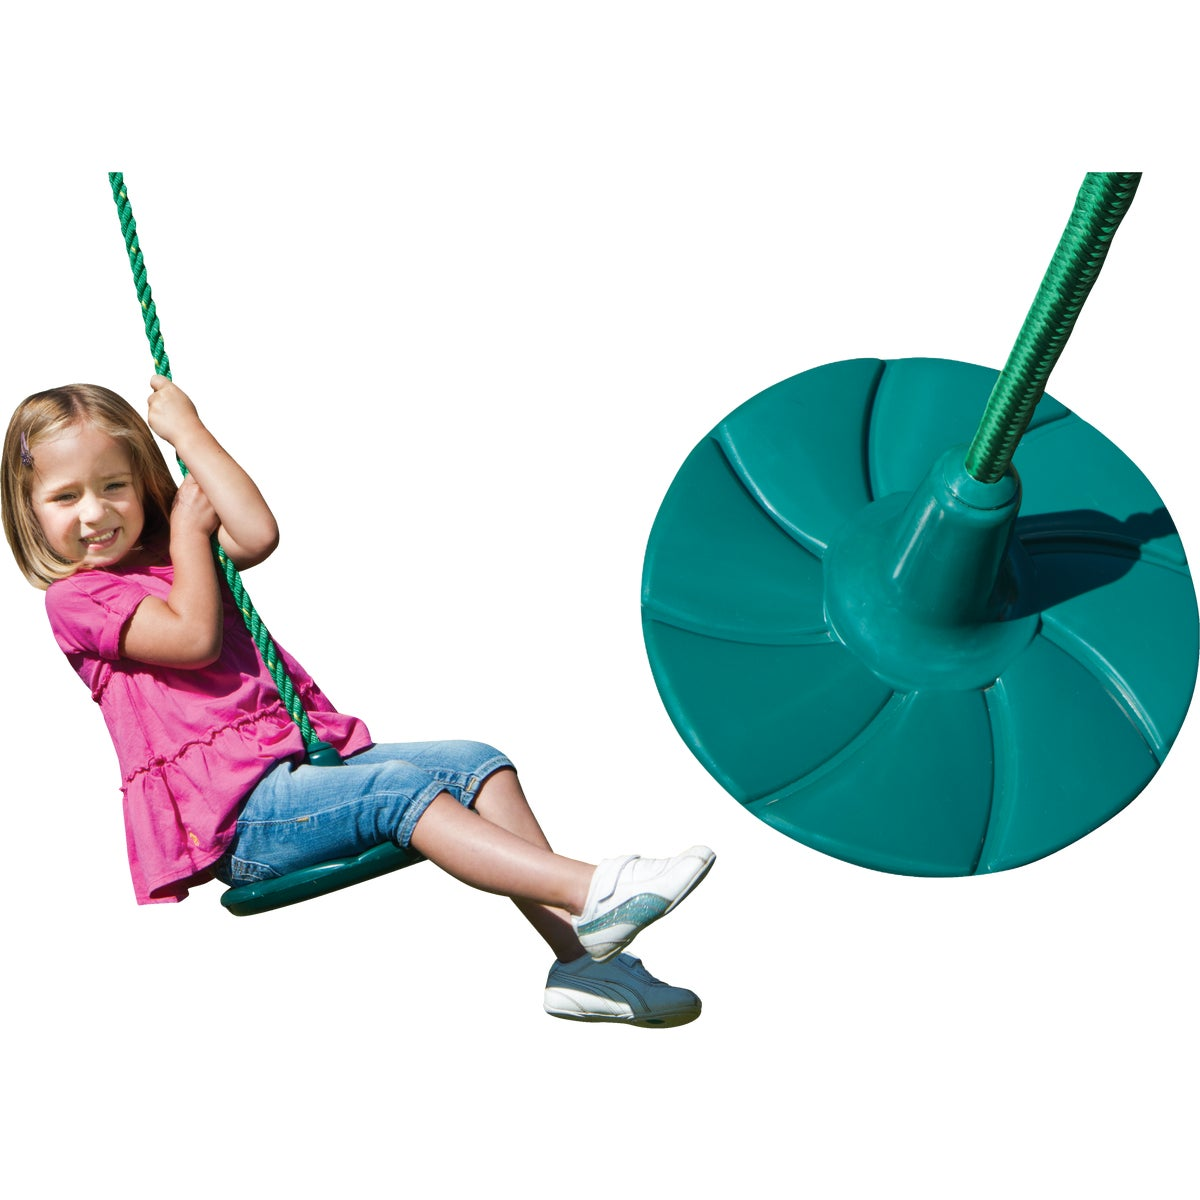 SHOOTING STAR DISC SWING - NE4574 by Swing N Slide Corp